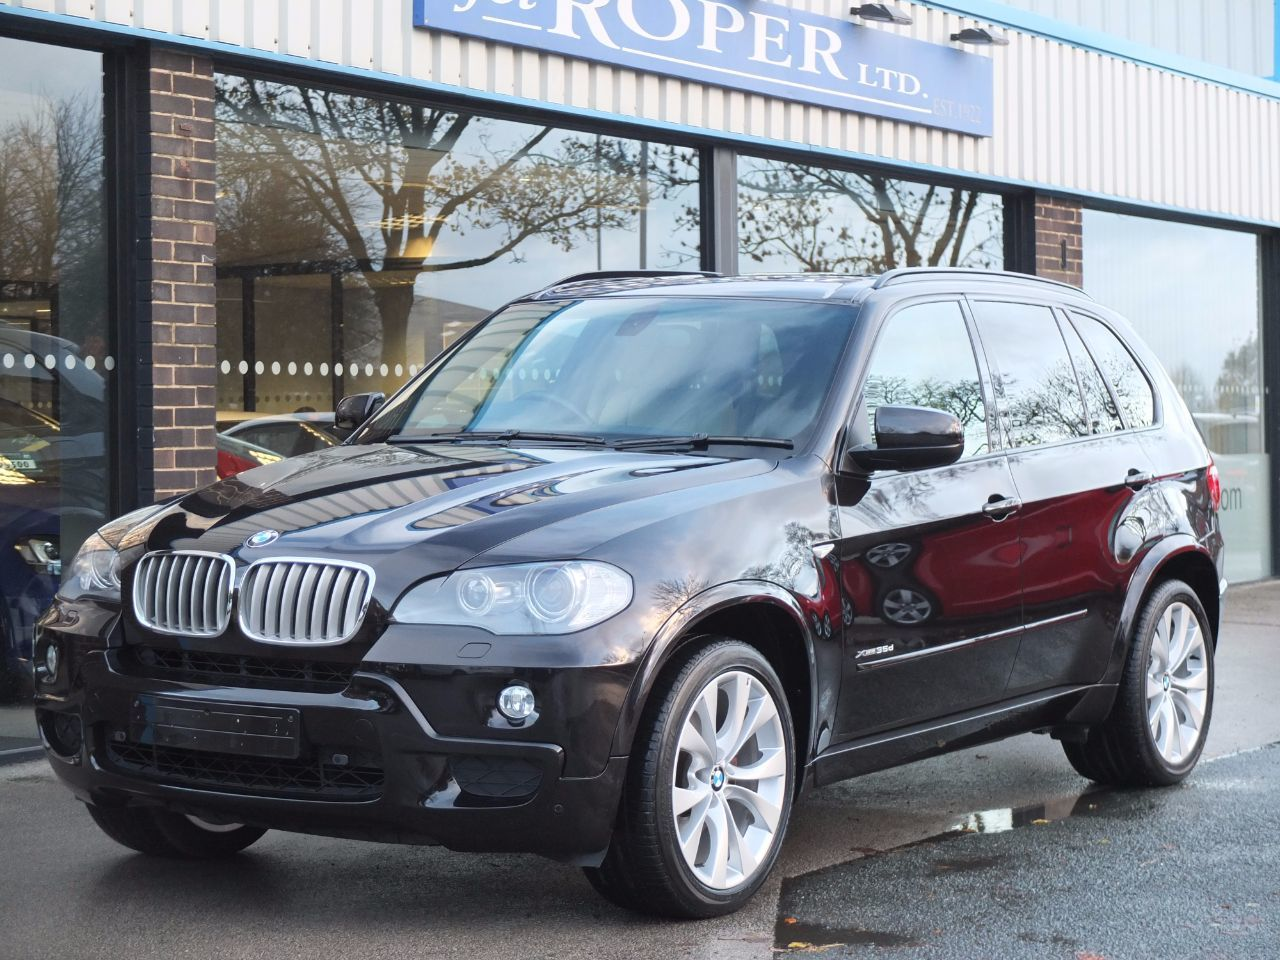 BMW X5 3.0 xDrive35d M Sport Auto Estate Diesel Ruby Black MetallicBMW X5 3.0 xDrive35d M Sport Auto Estate Diesel Ruby Black Metallic at fa Roper Ltd Bradford